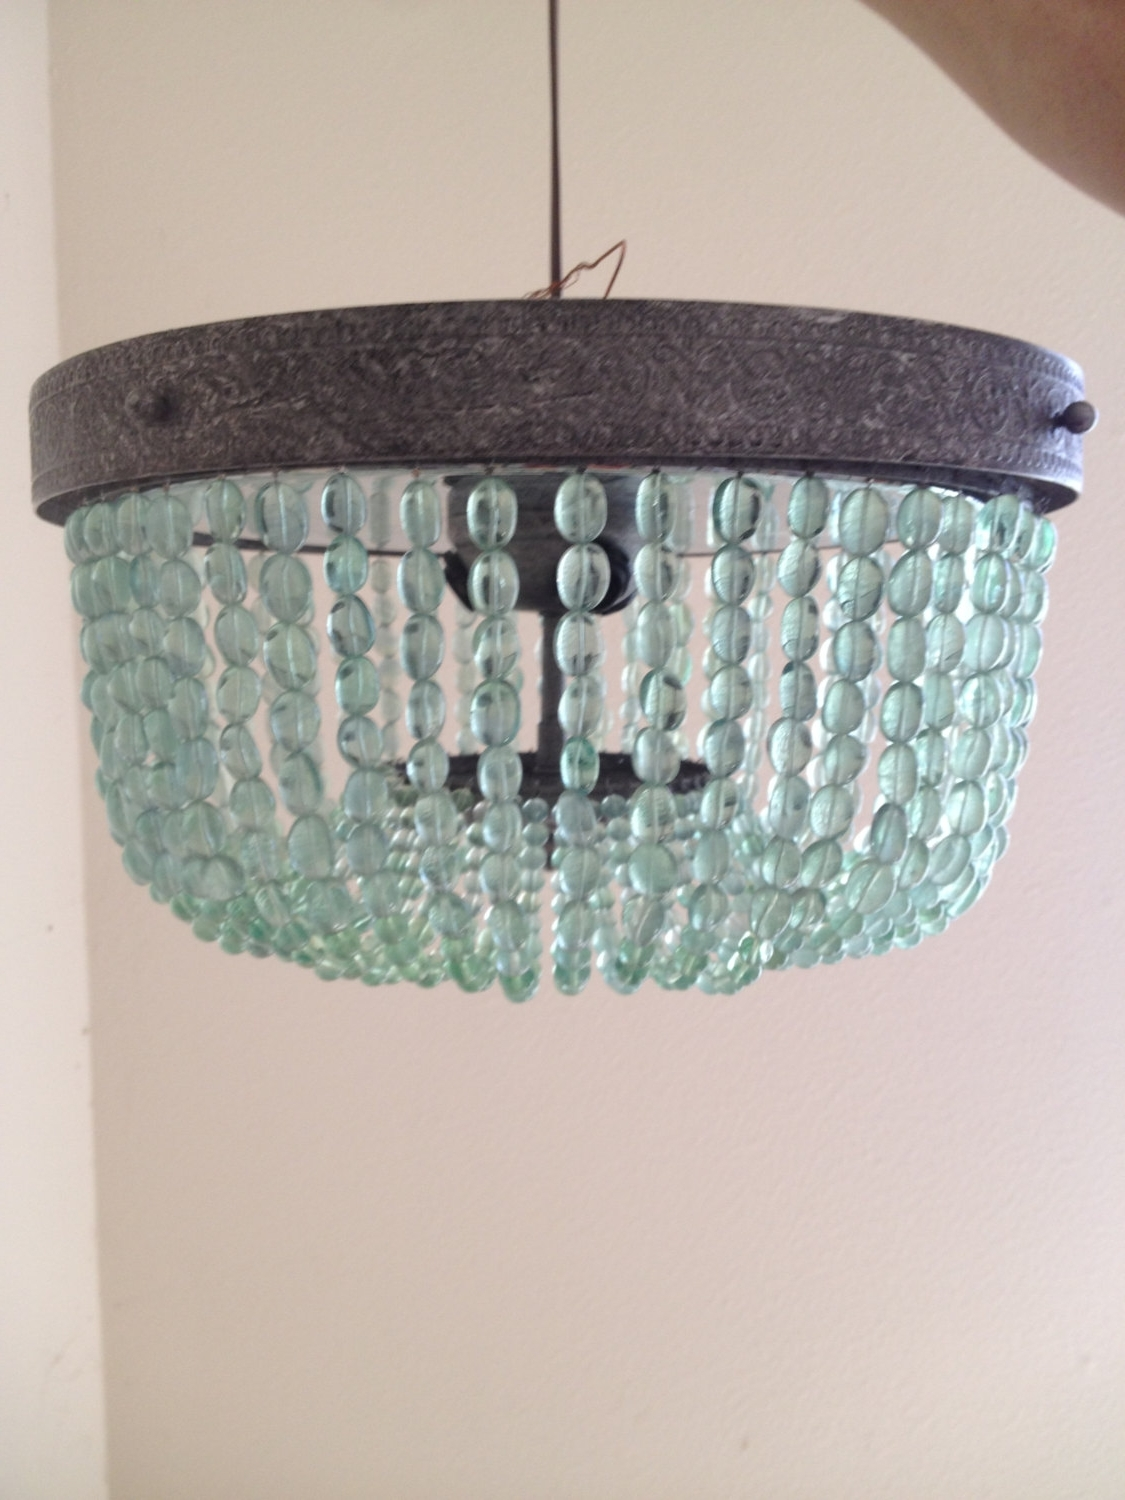 Popular Turquoise Blue Beaded Chandeliers Pertaining To Aqua (light Turquoise, Green) Vintage Style Beaded Chandelier (View 16 of 20)